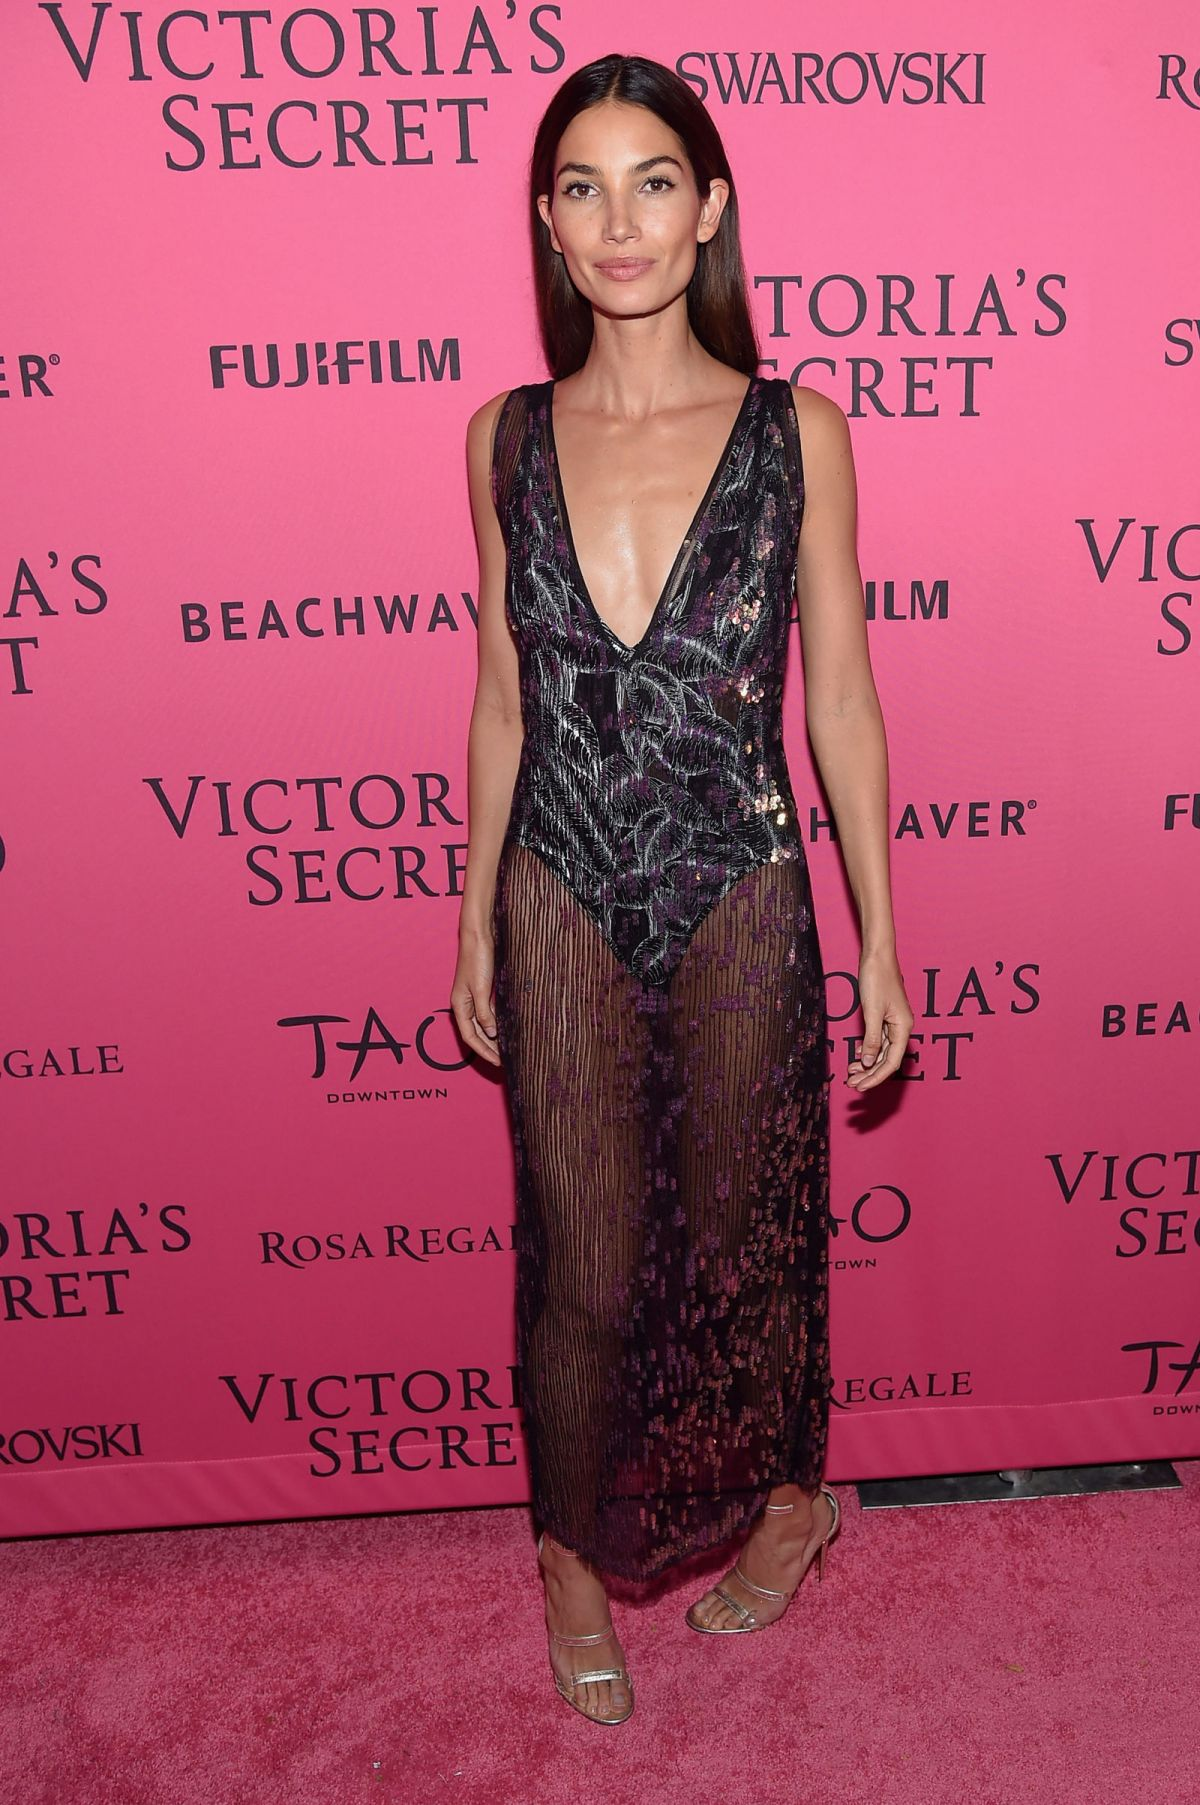 LILY ALDRIDGE at Victoria's Secret 2015 Fashion Show After Party 11/10/2015